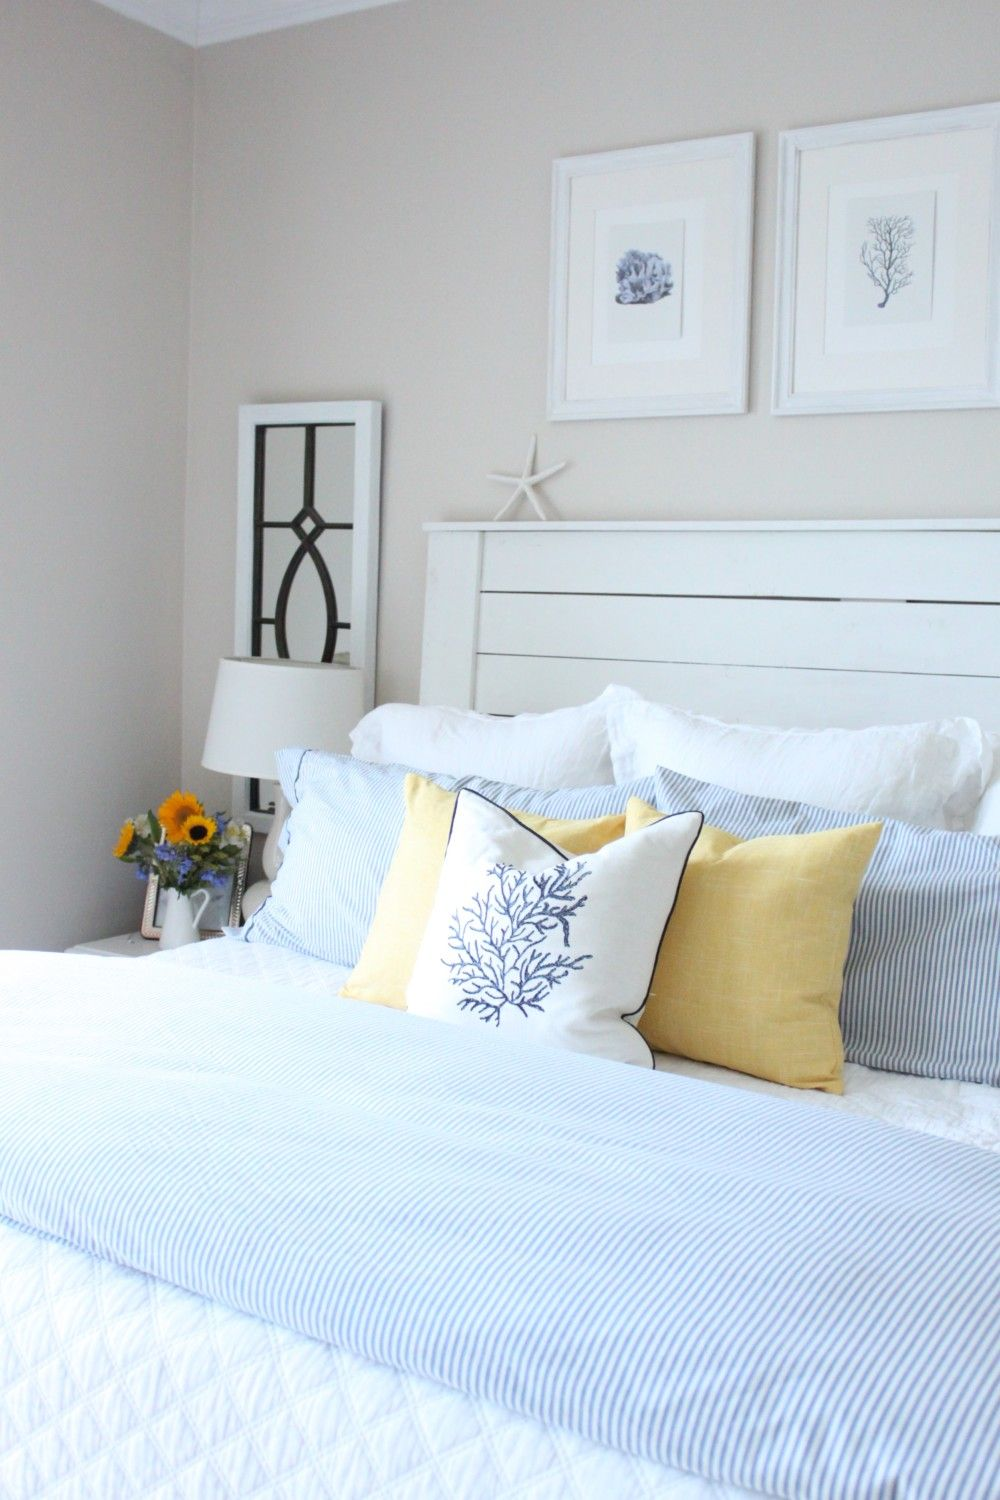 June 2017 Blue, White and Yellow in the Bedroom (With